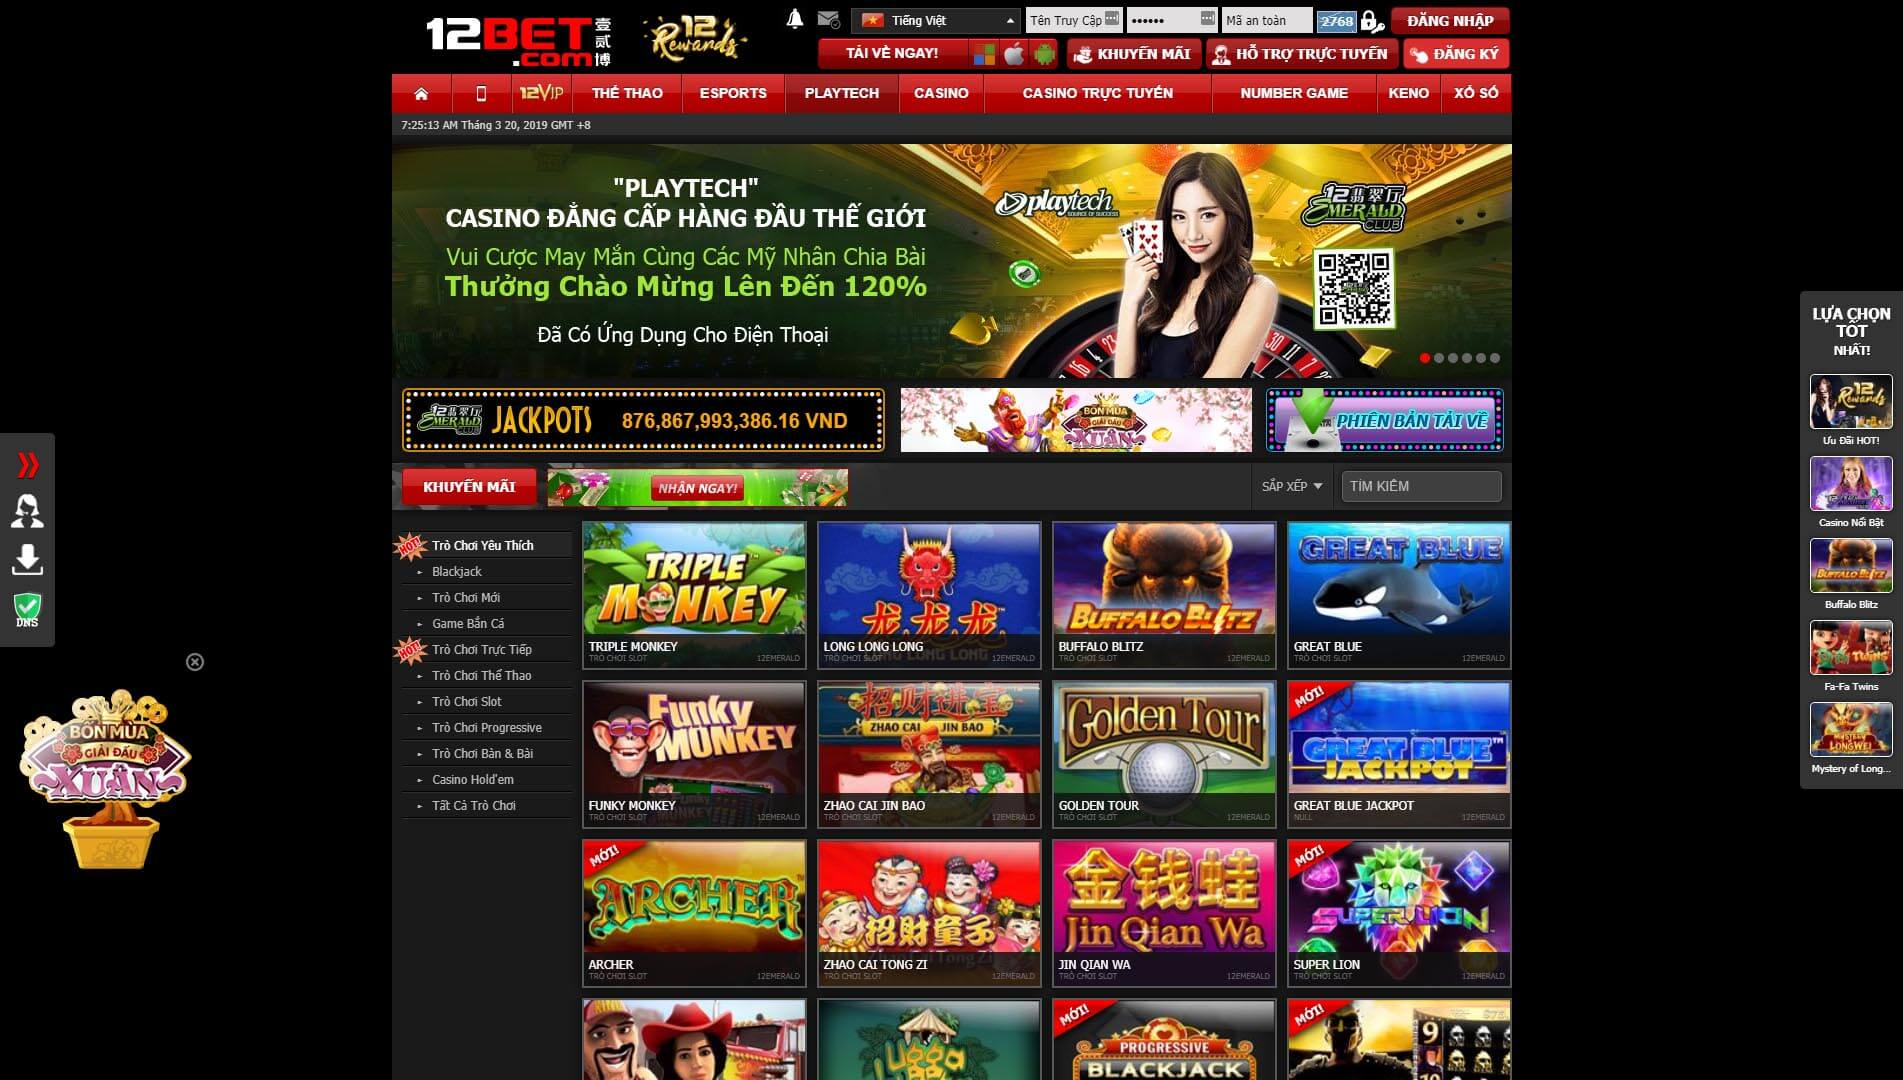 Giao diện Playtech 12BET